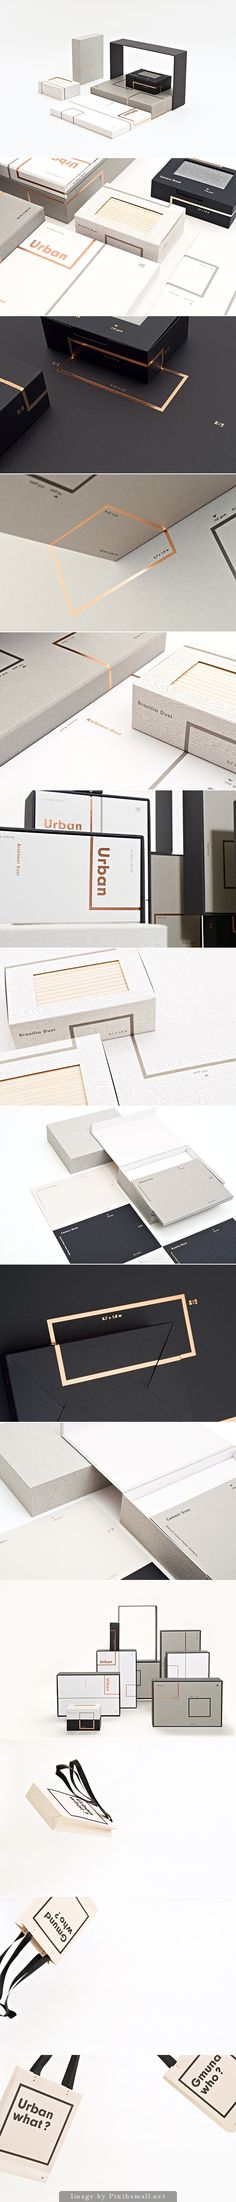 branding and packaging Corporate Design, Brand Identity Design, Graphic Design Branding, Typography Design, Logo Design, Corporate Identity, Visual Identity, Identity Branding, Web Design